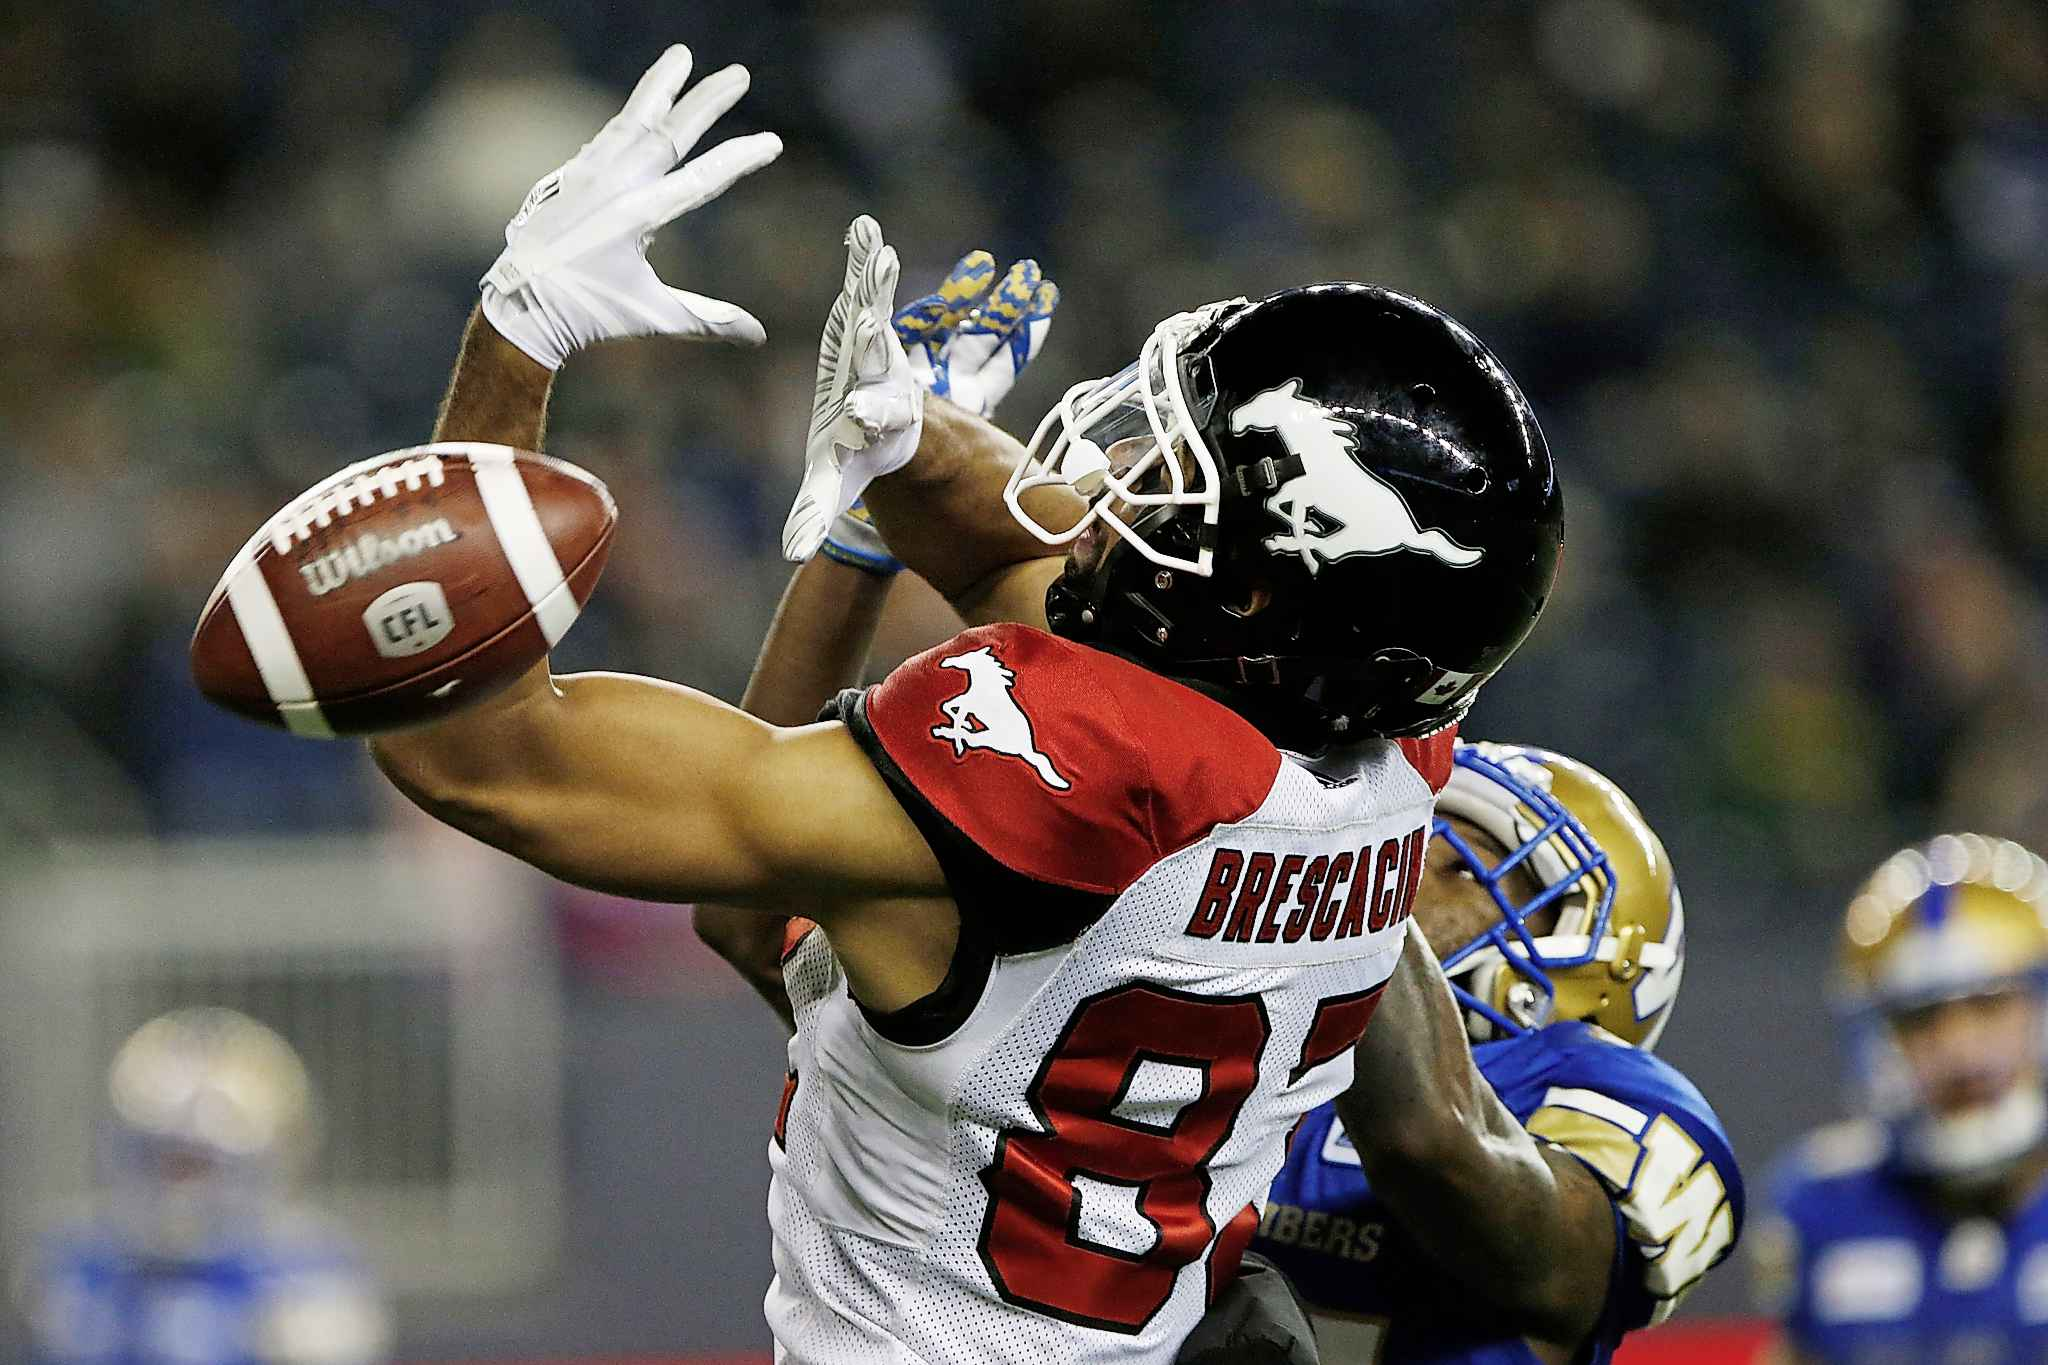 Calgary Stampeders' Juwan Brescacin (82) can't hang onto the pass as he gets pressure from Winnipeg Blue Bombers' Brandon Alexander (37) Friday. JOHN WOODS / THE CANADIAN PRESS